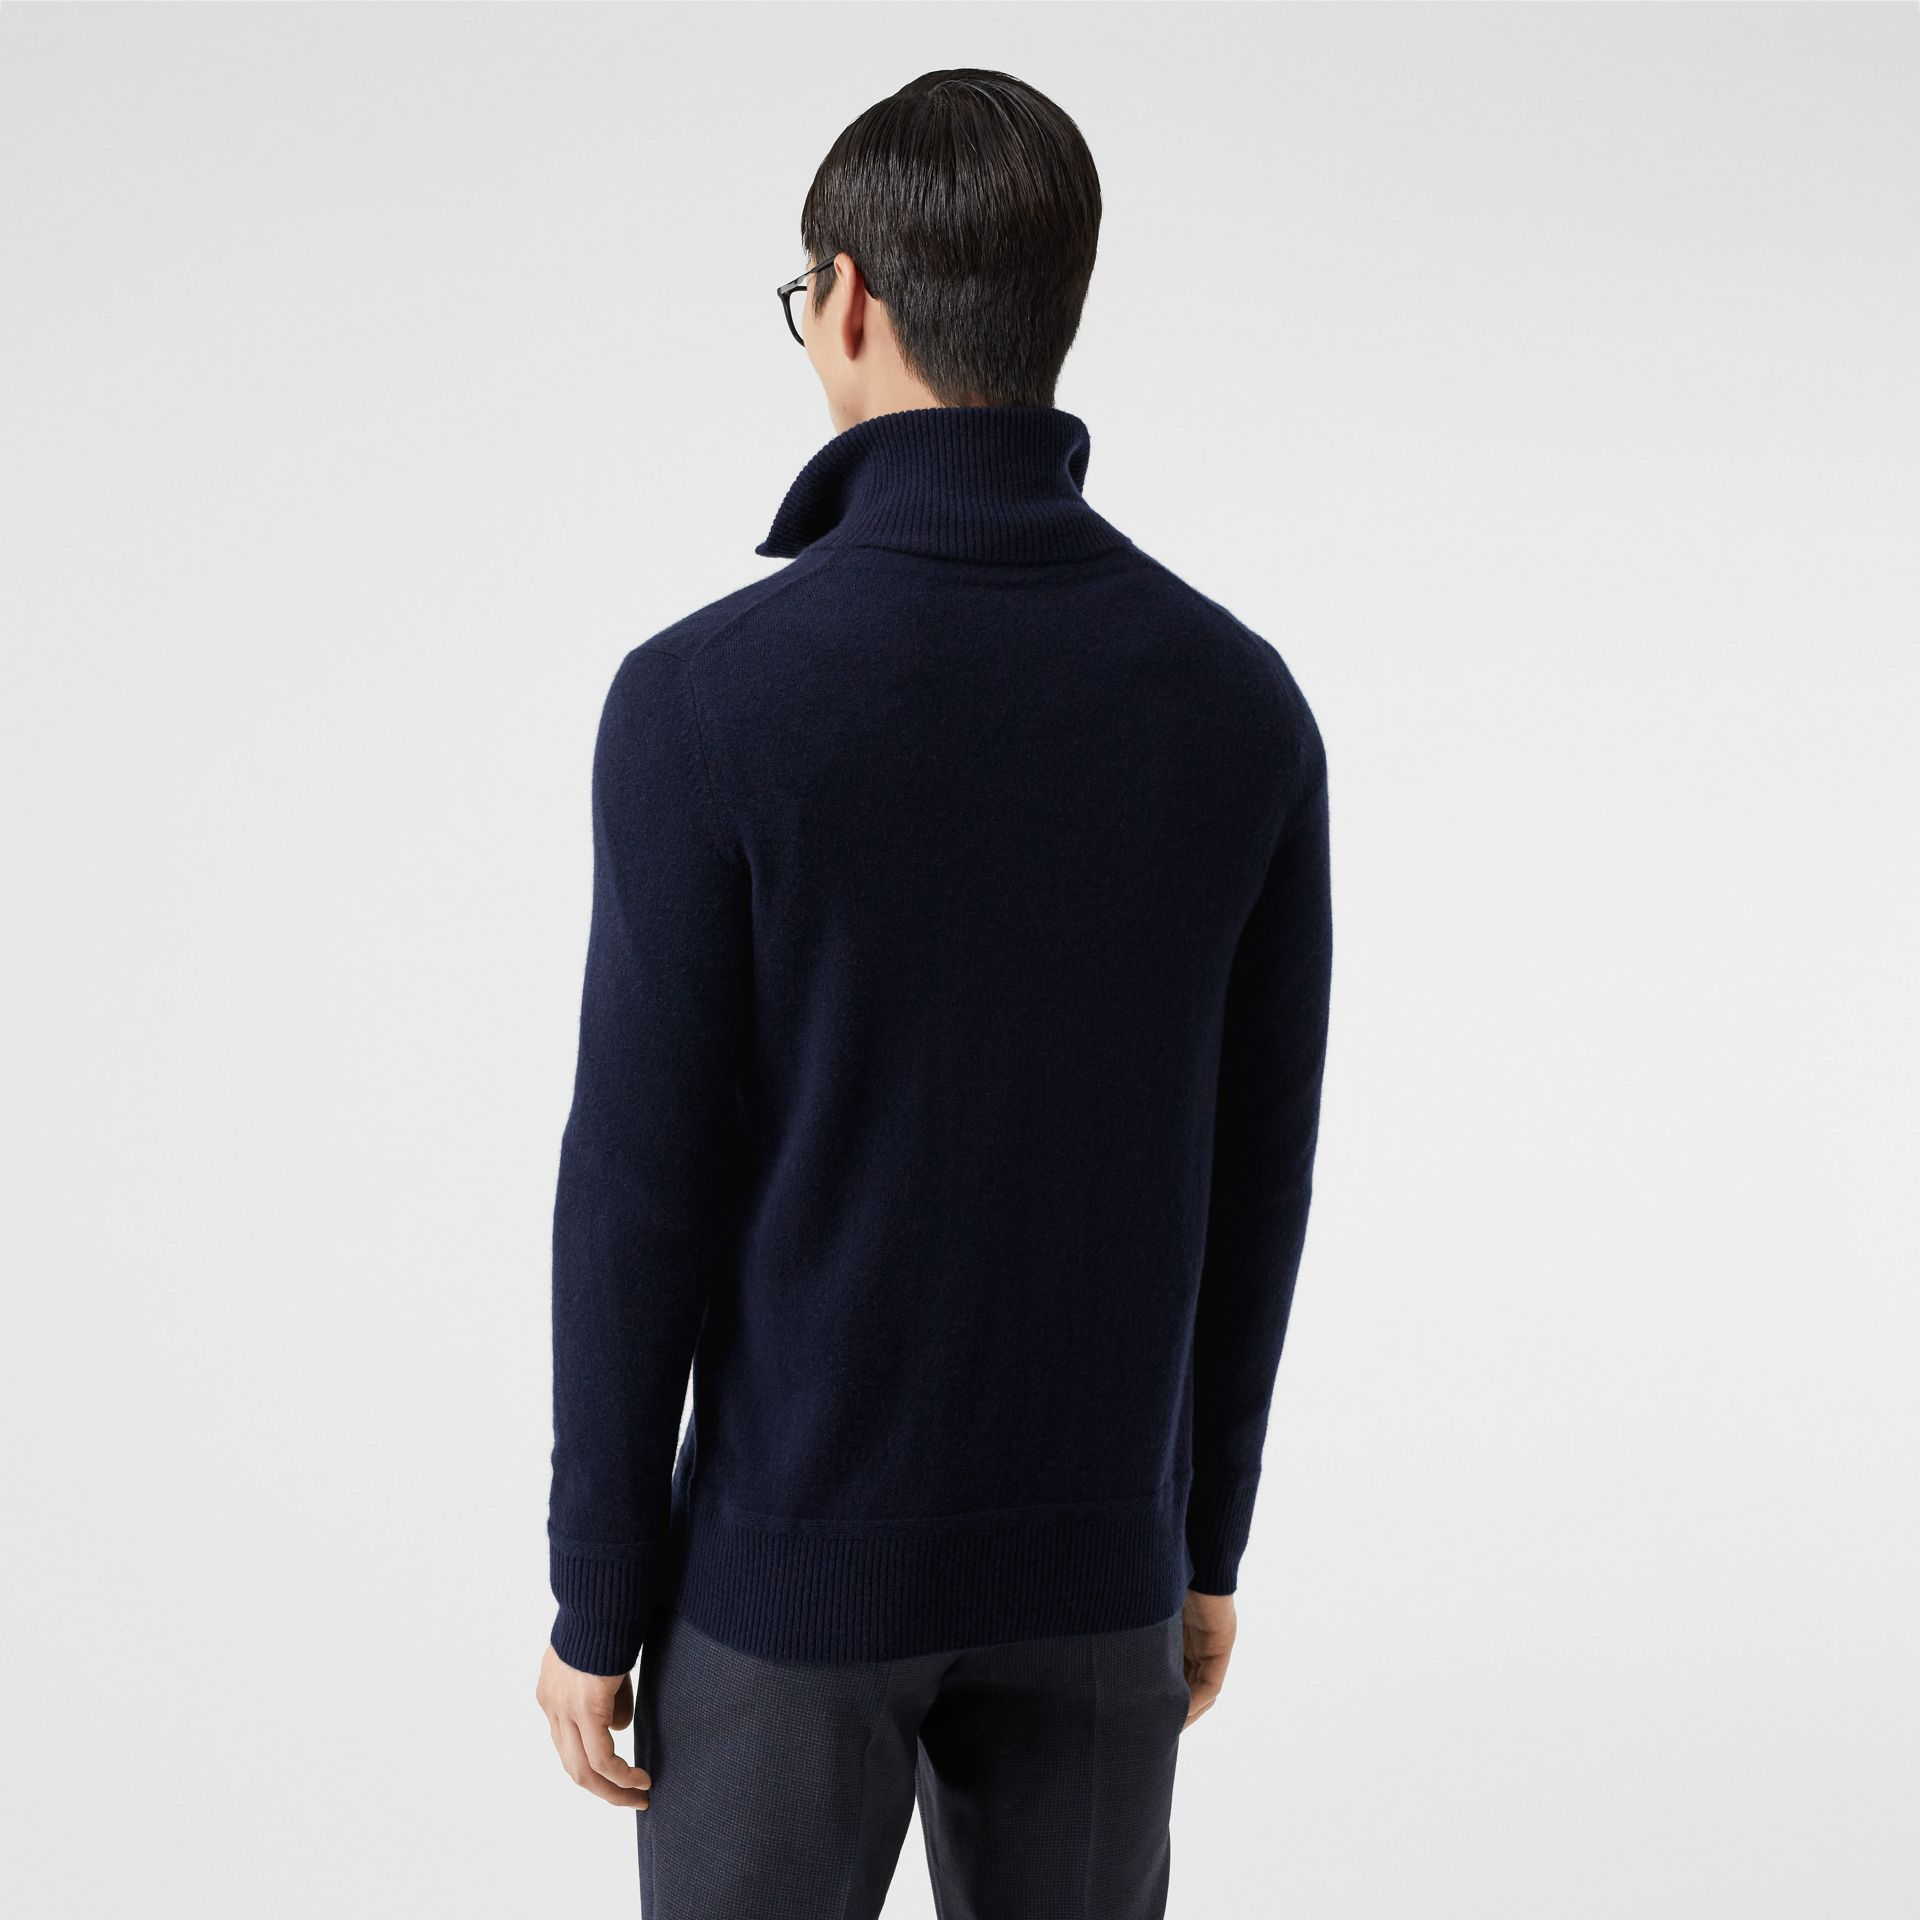 Monogram Motif Cashmere Funnel Neck Sweater in Navy - Men | Burberry Hong Kong S.A.R - gallery image 2